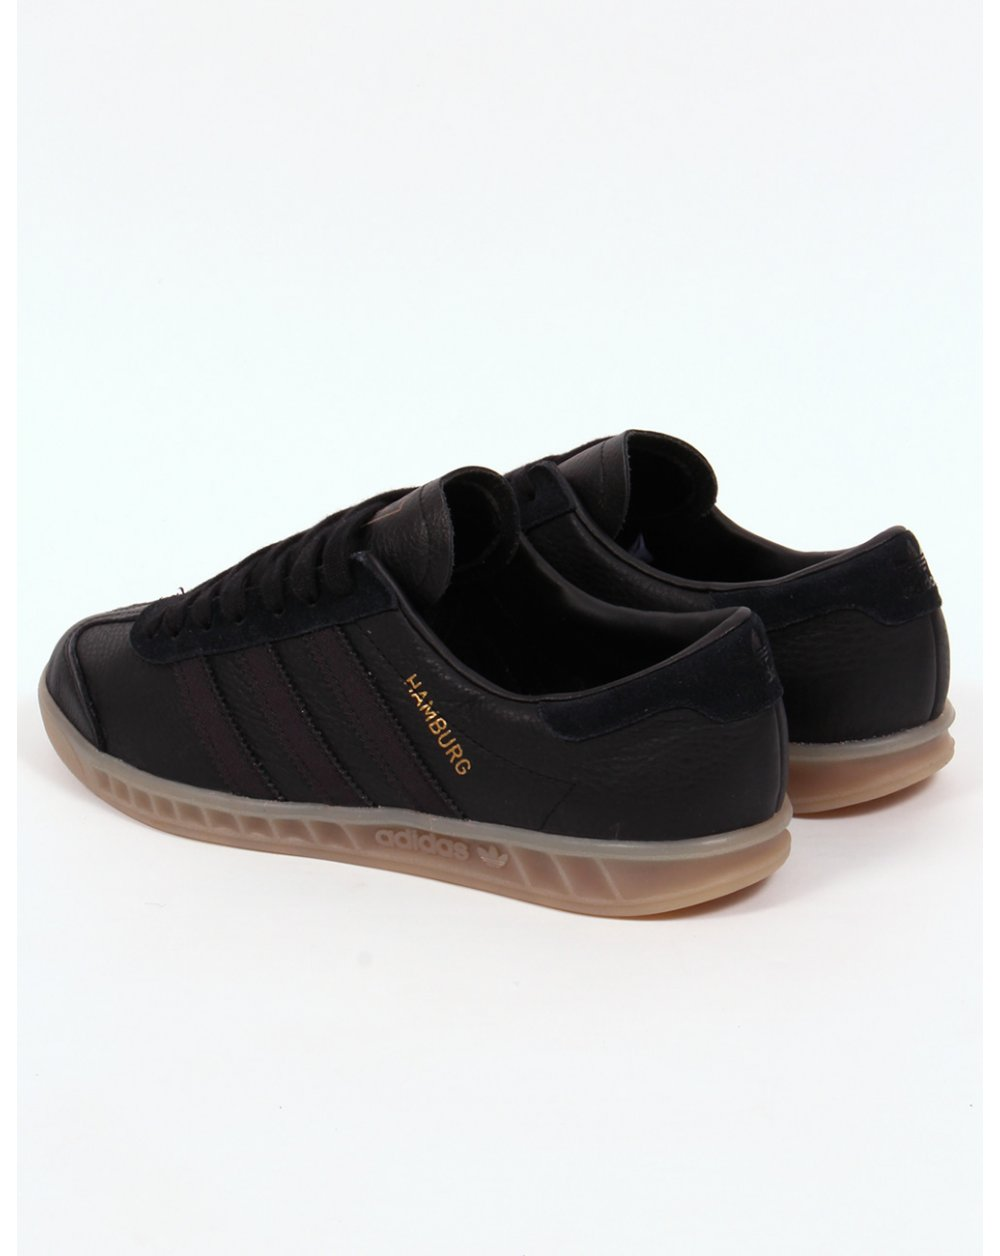 adidas hamburg black mens